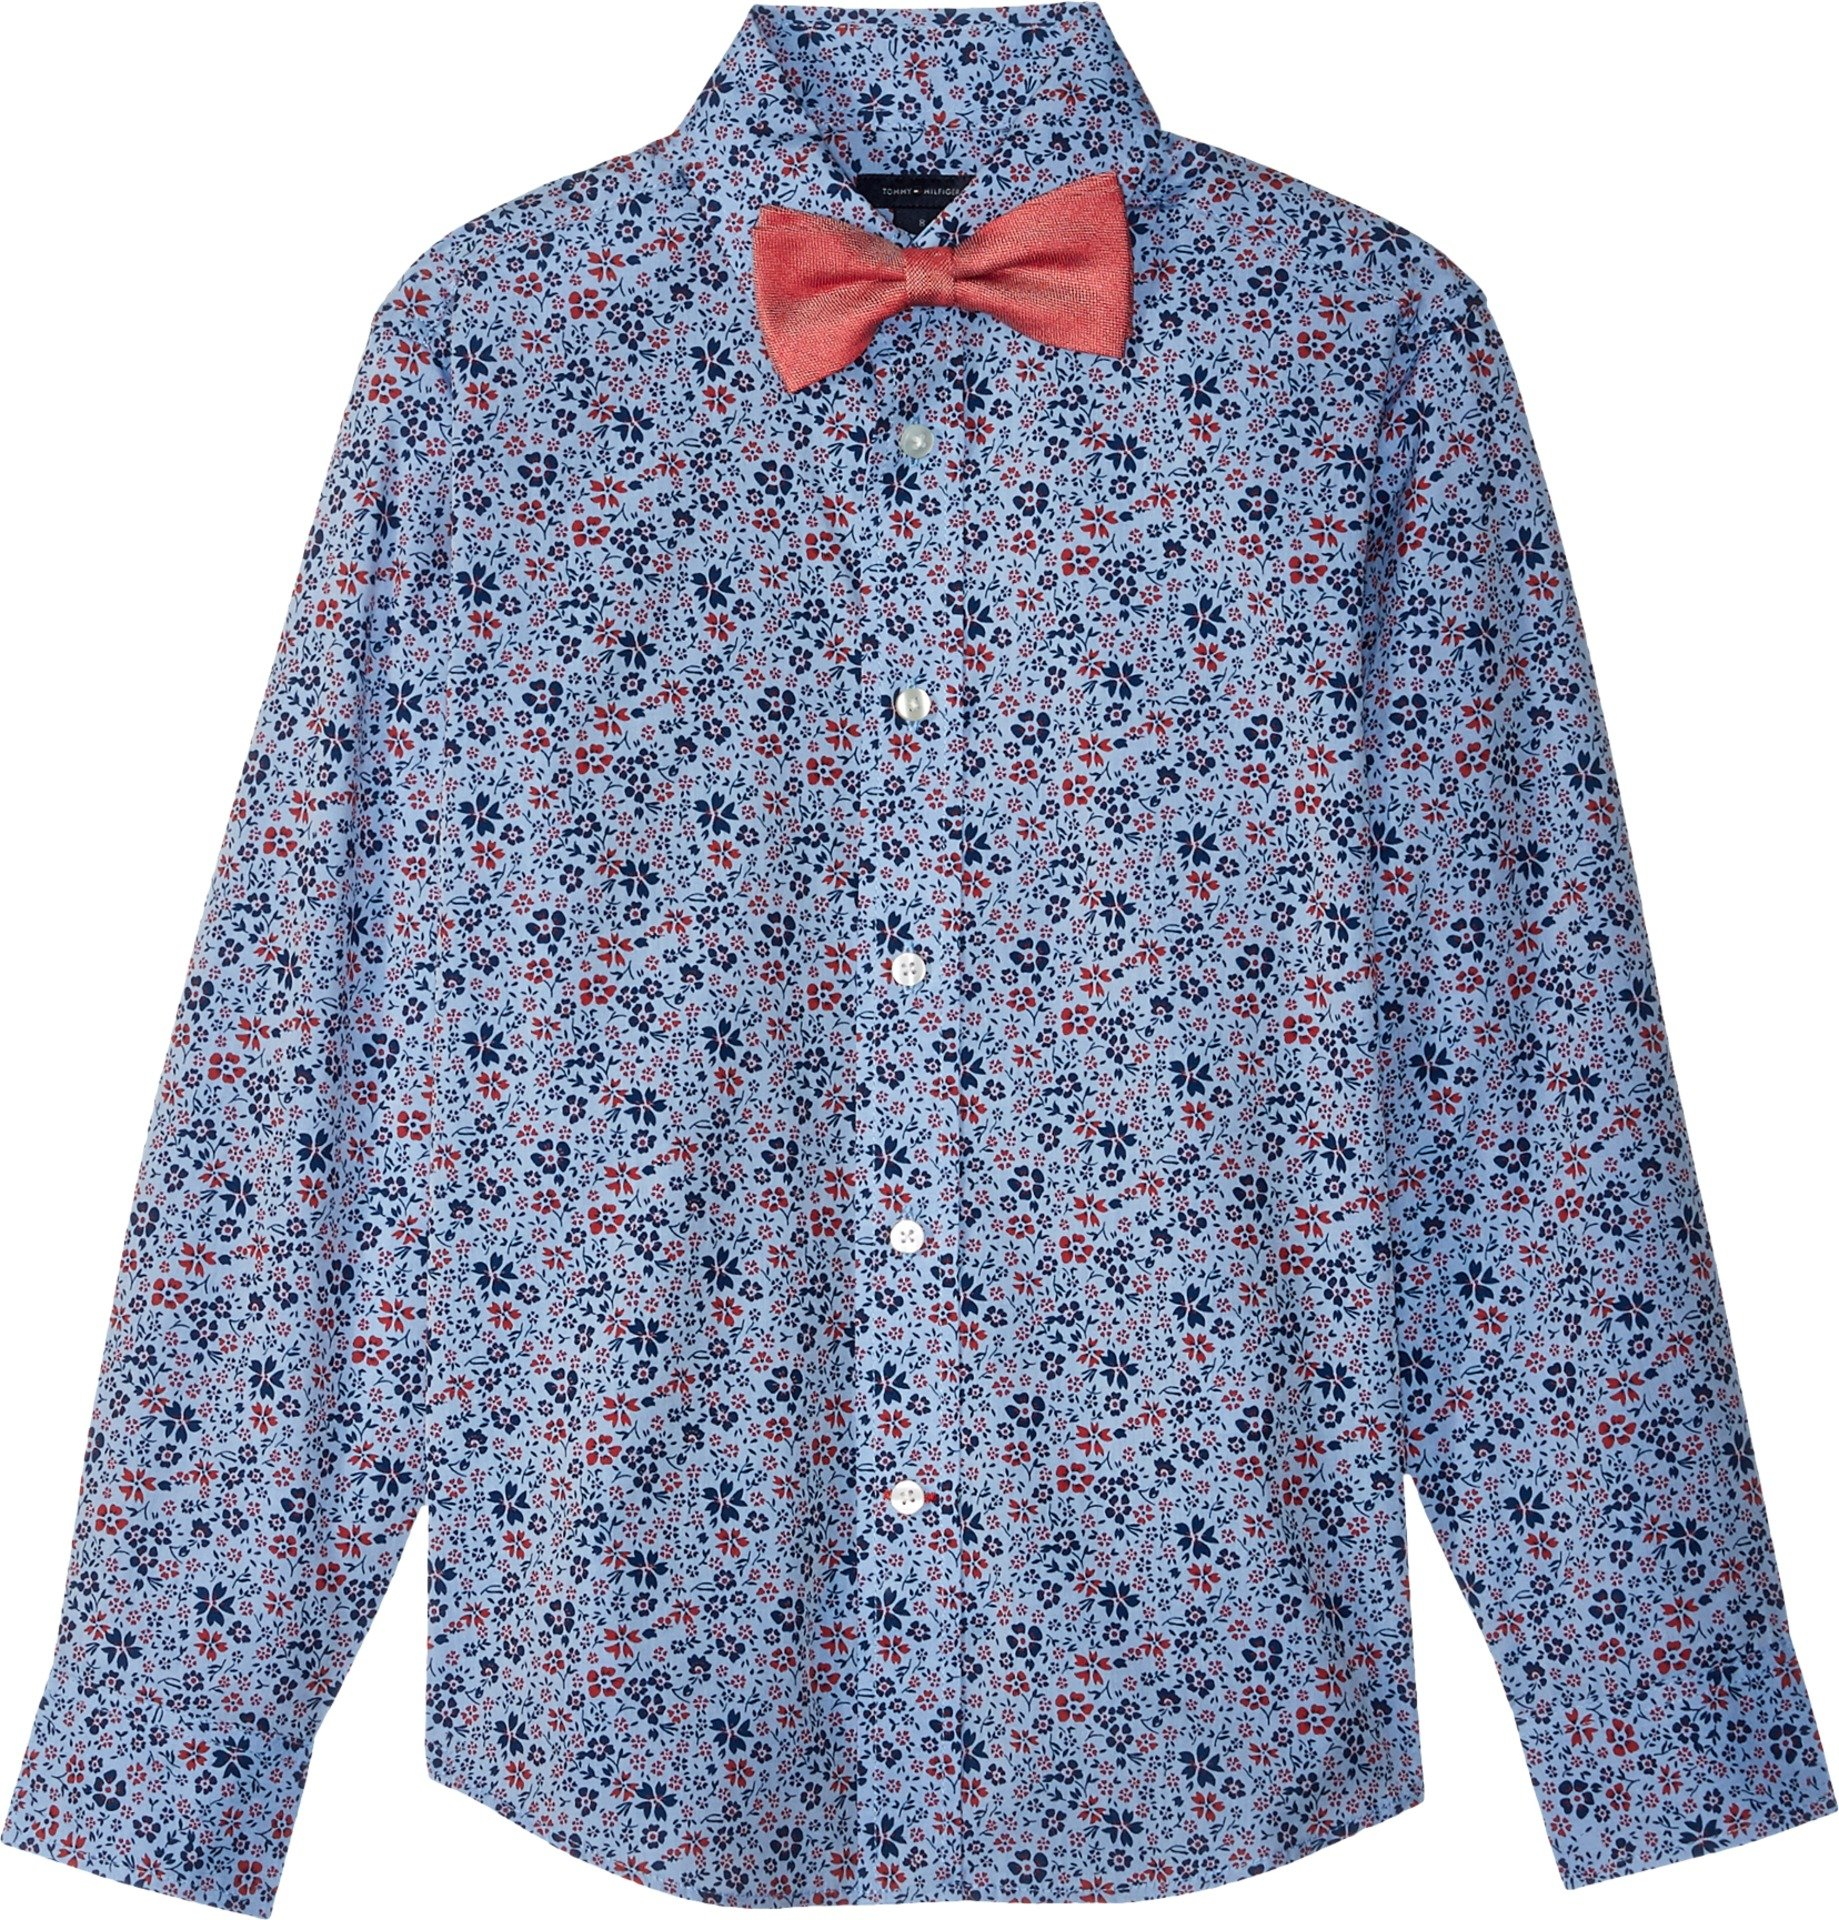 Tommy Hilfiger Big Boys' Long Sleeve Stretch Dress Shirt with Bow Tie, Floral Cherry Popsicle, 20